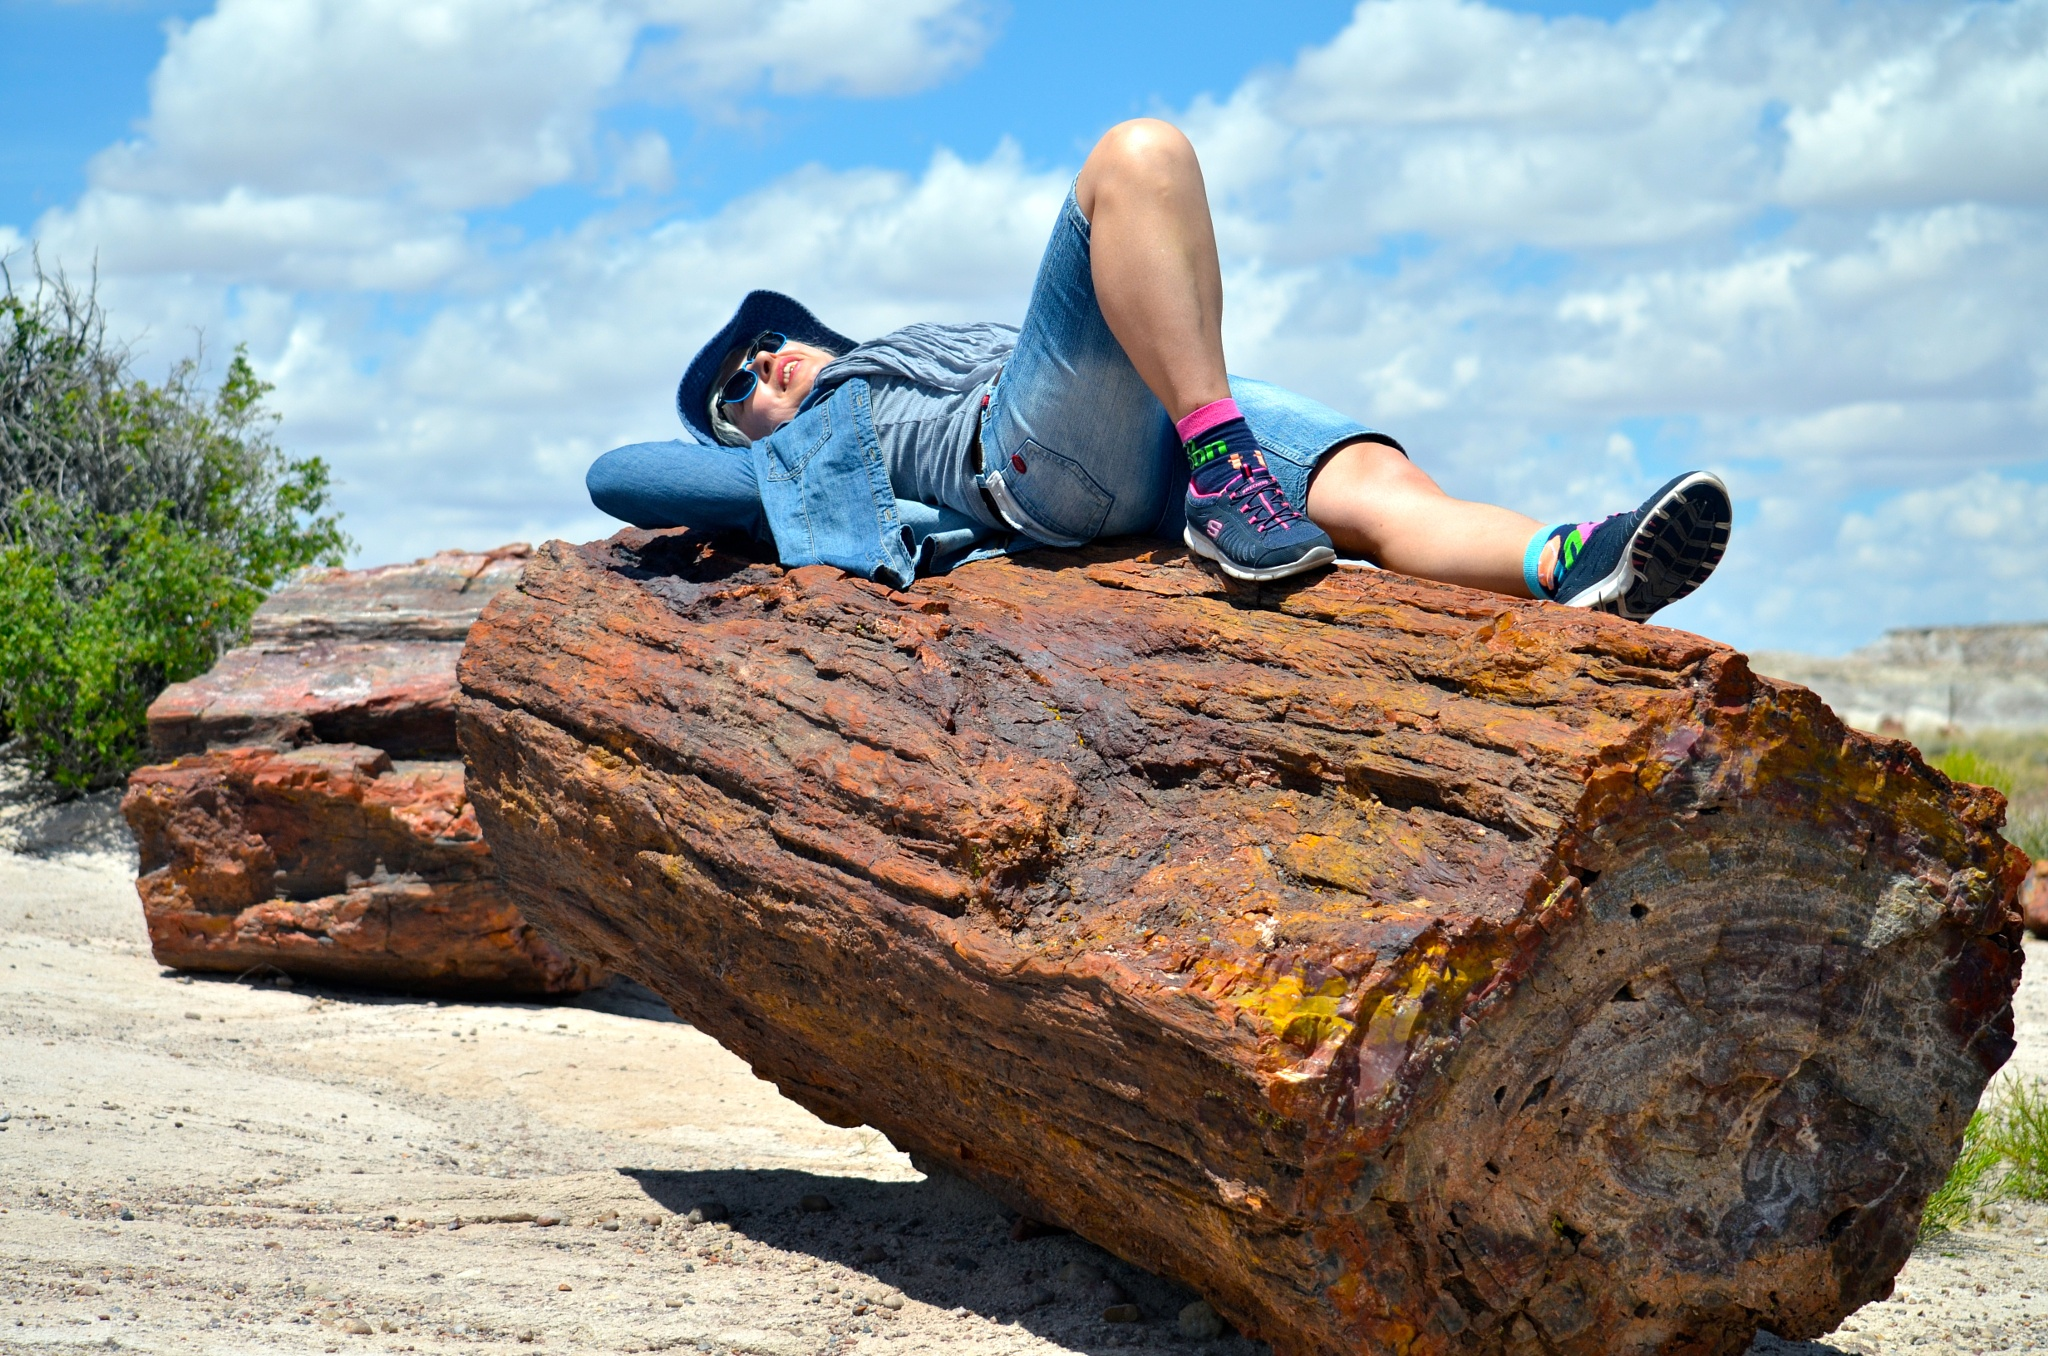 Resting on petrified wood by Lana-photo-Art